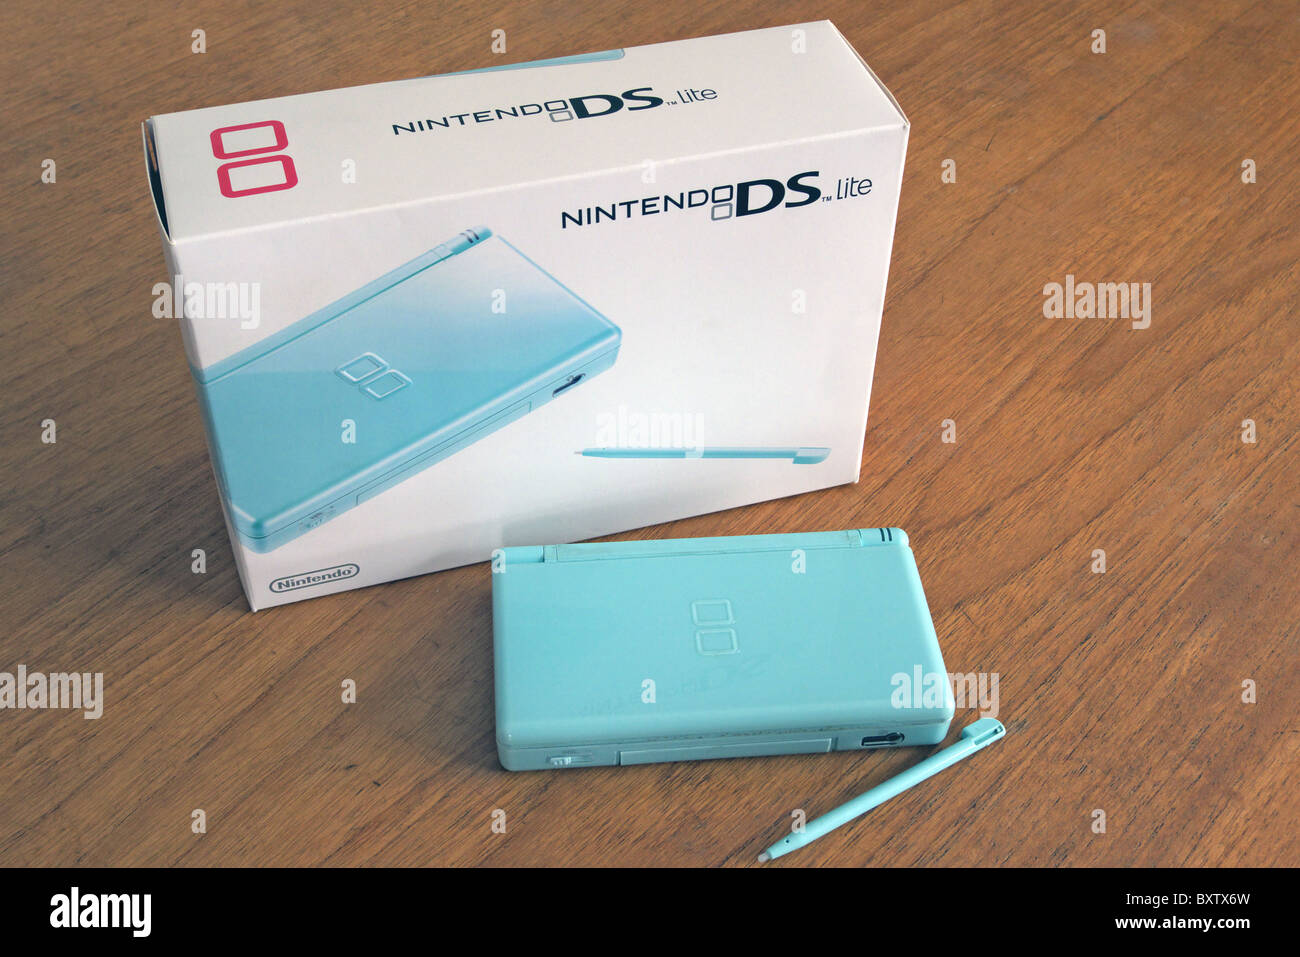 Nintendo DS Lite Handheld Games Console with box packaging, UK - Stock Image